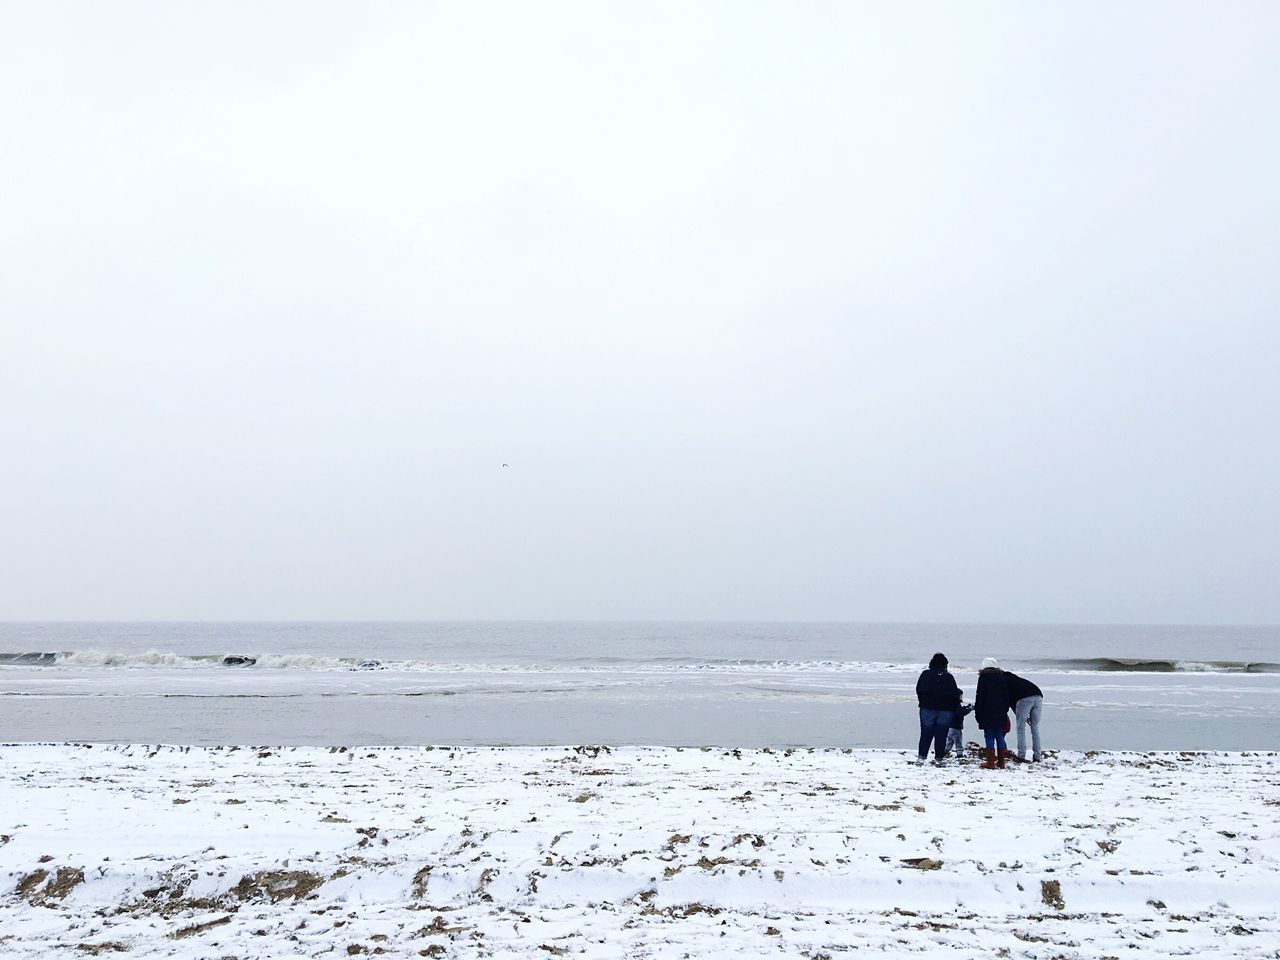 Sea Seaside Beach Snow Winter Domestic Animals Animal Themes Nature Mammal Winter One Animal Beauty In Nature Horizon Over Water Outdoors Real People Scenics Clear Sky Cold Temperature Pets Horse Water Sky Dog IPhoneography Iphonephotography